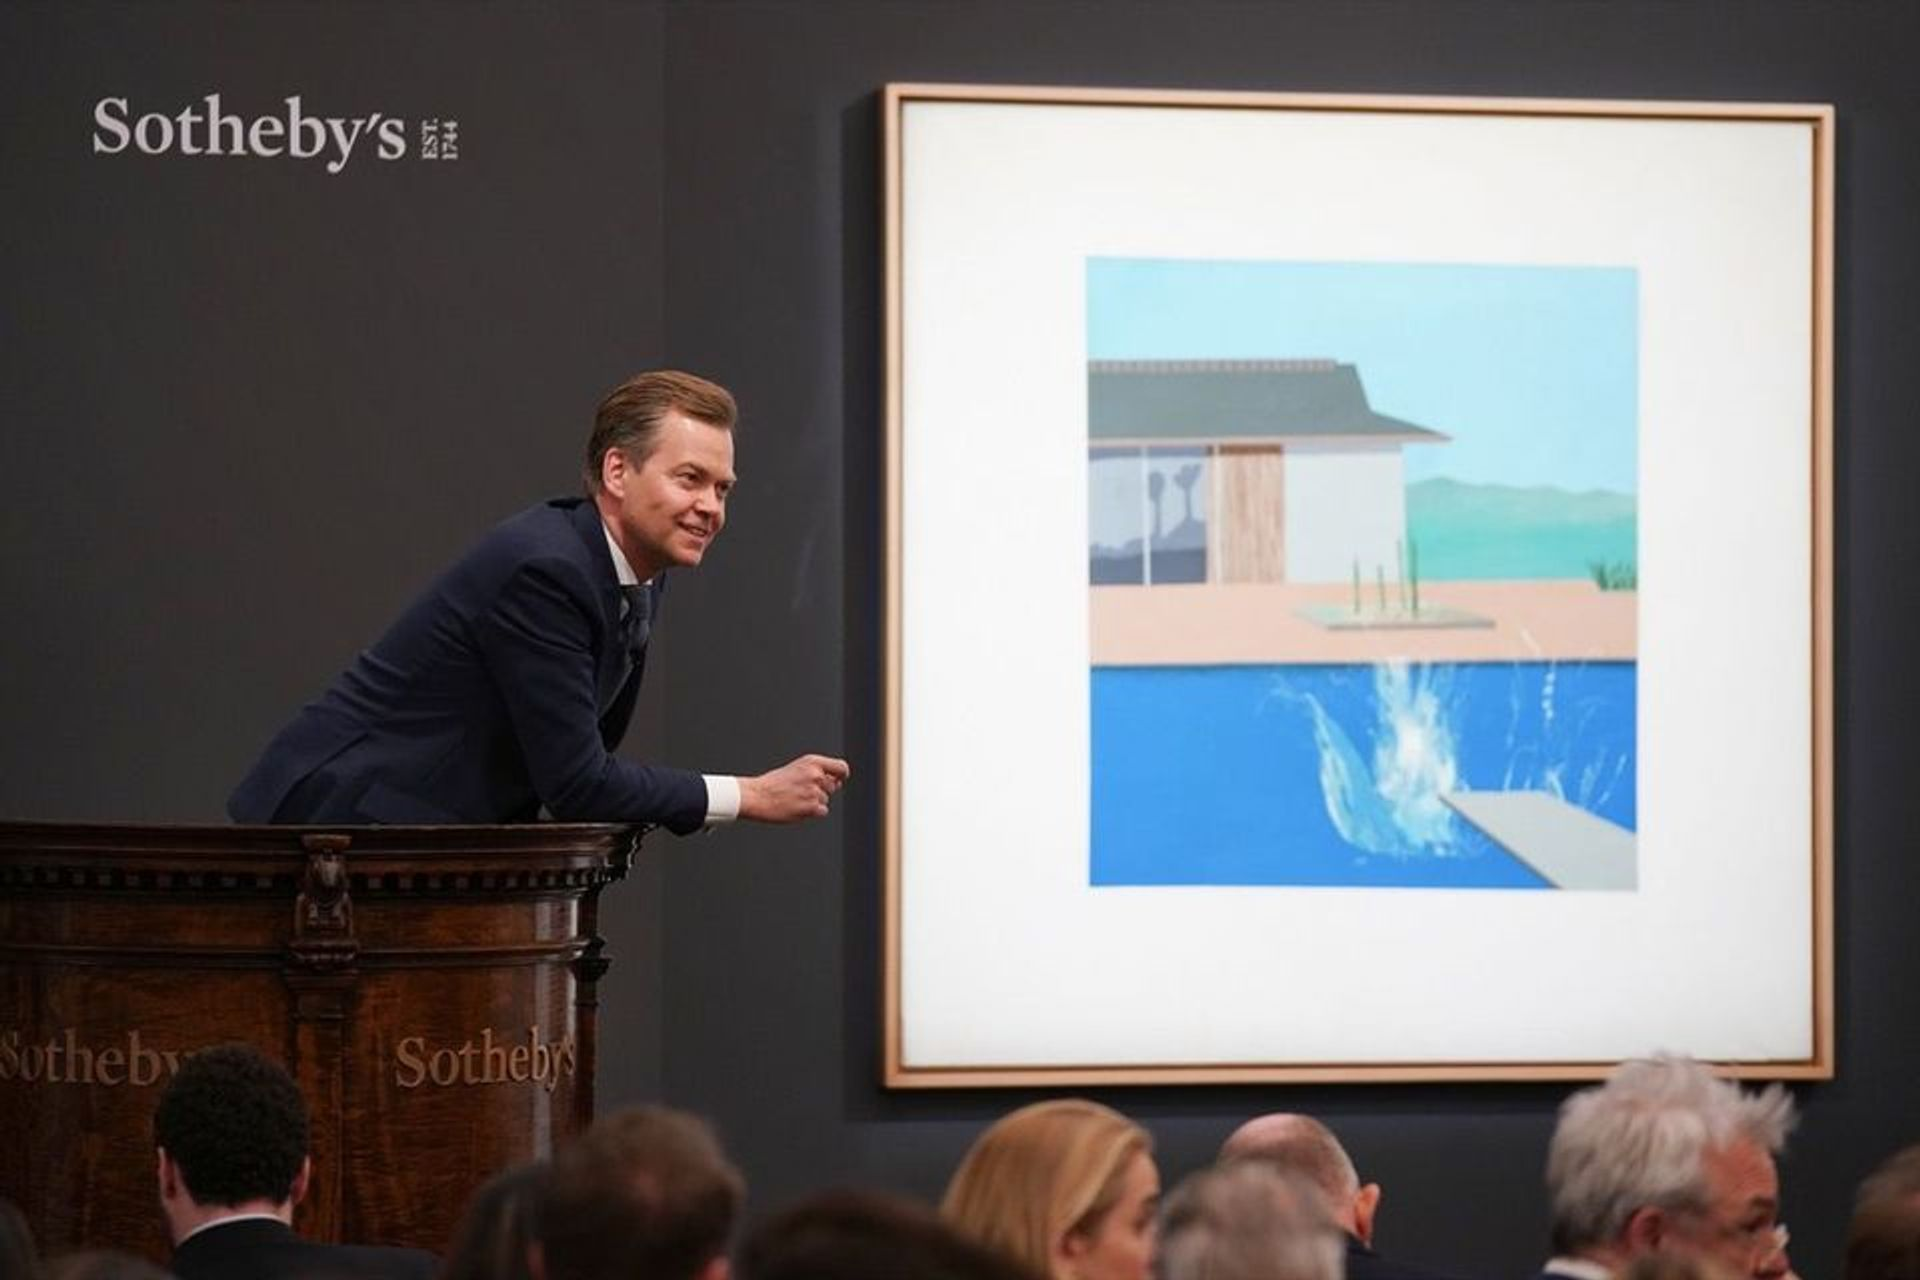 David Hockney's The Splash (1966) sold at Sotheby's earlier this year Courtesy of Sotheby's